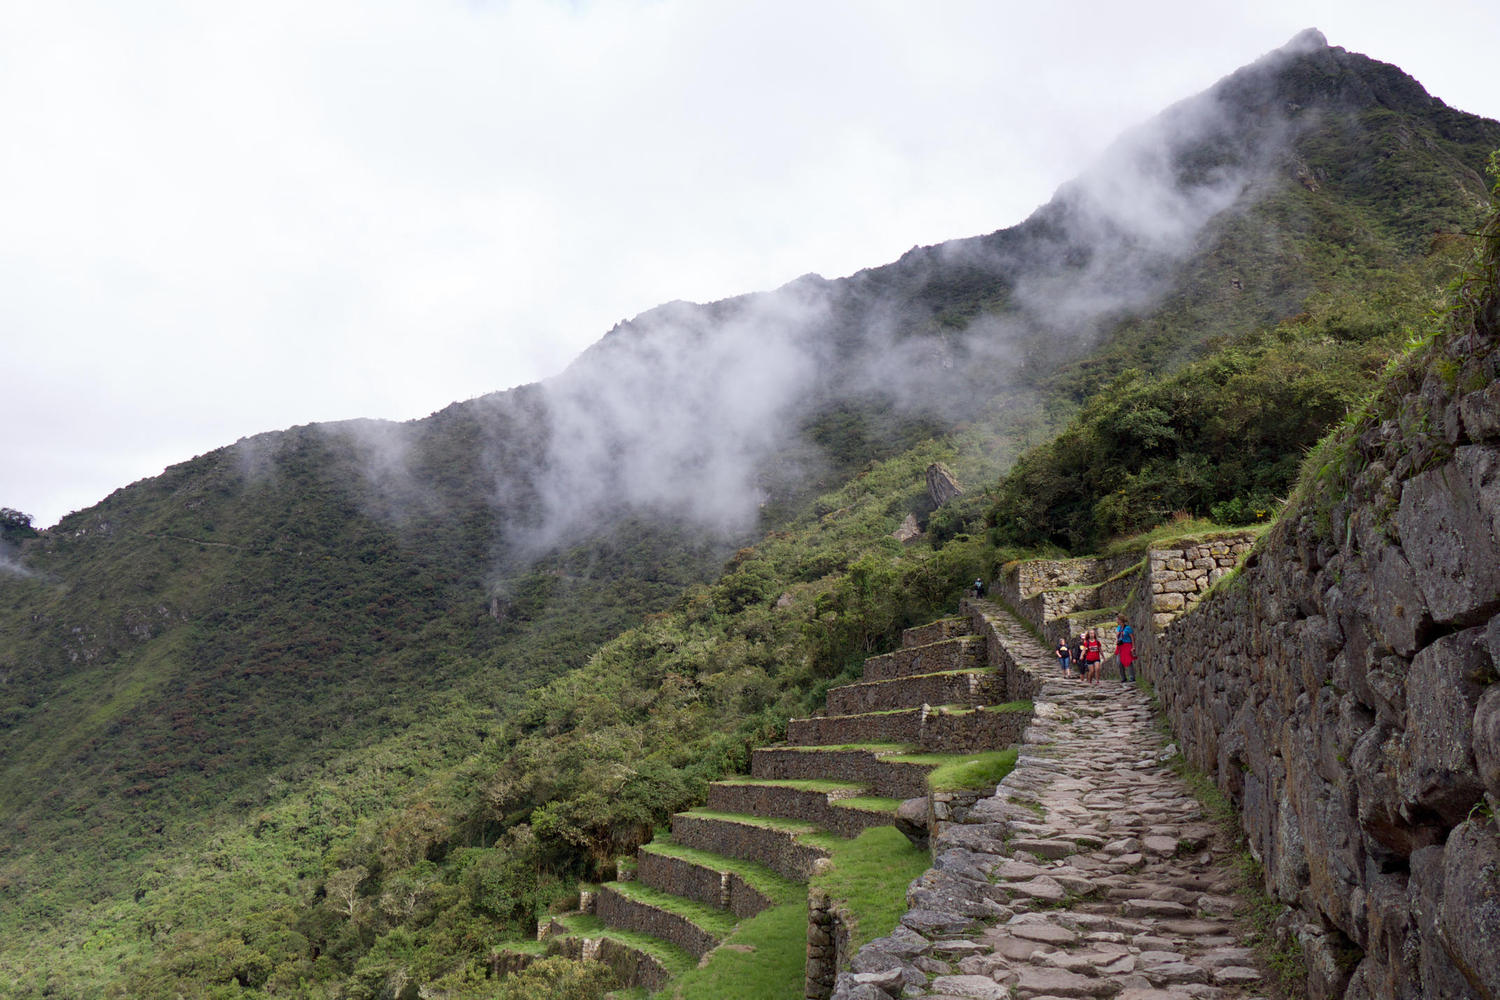 Walking down the trail from the Sun Gate at Machu Picchu